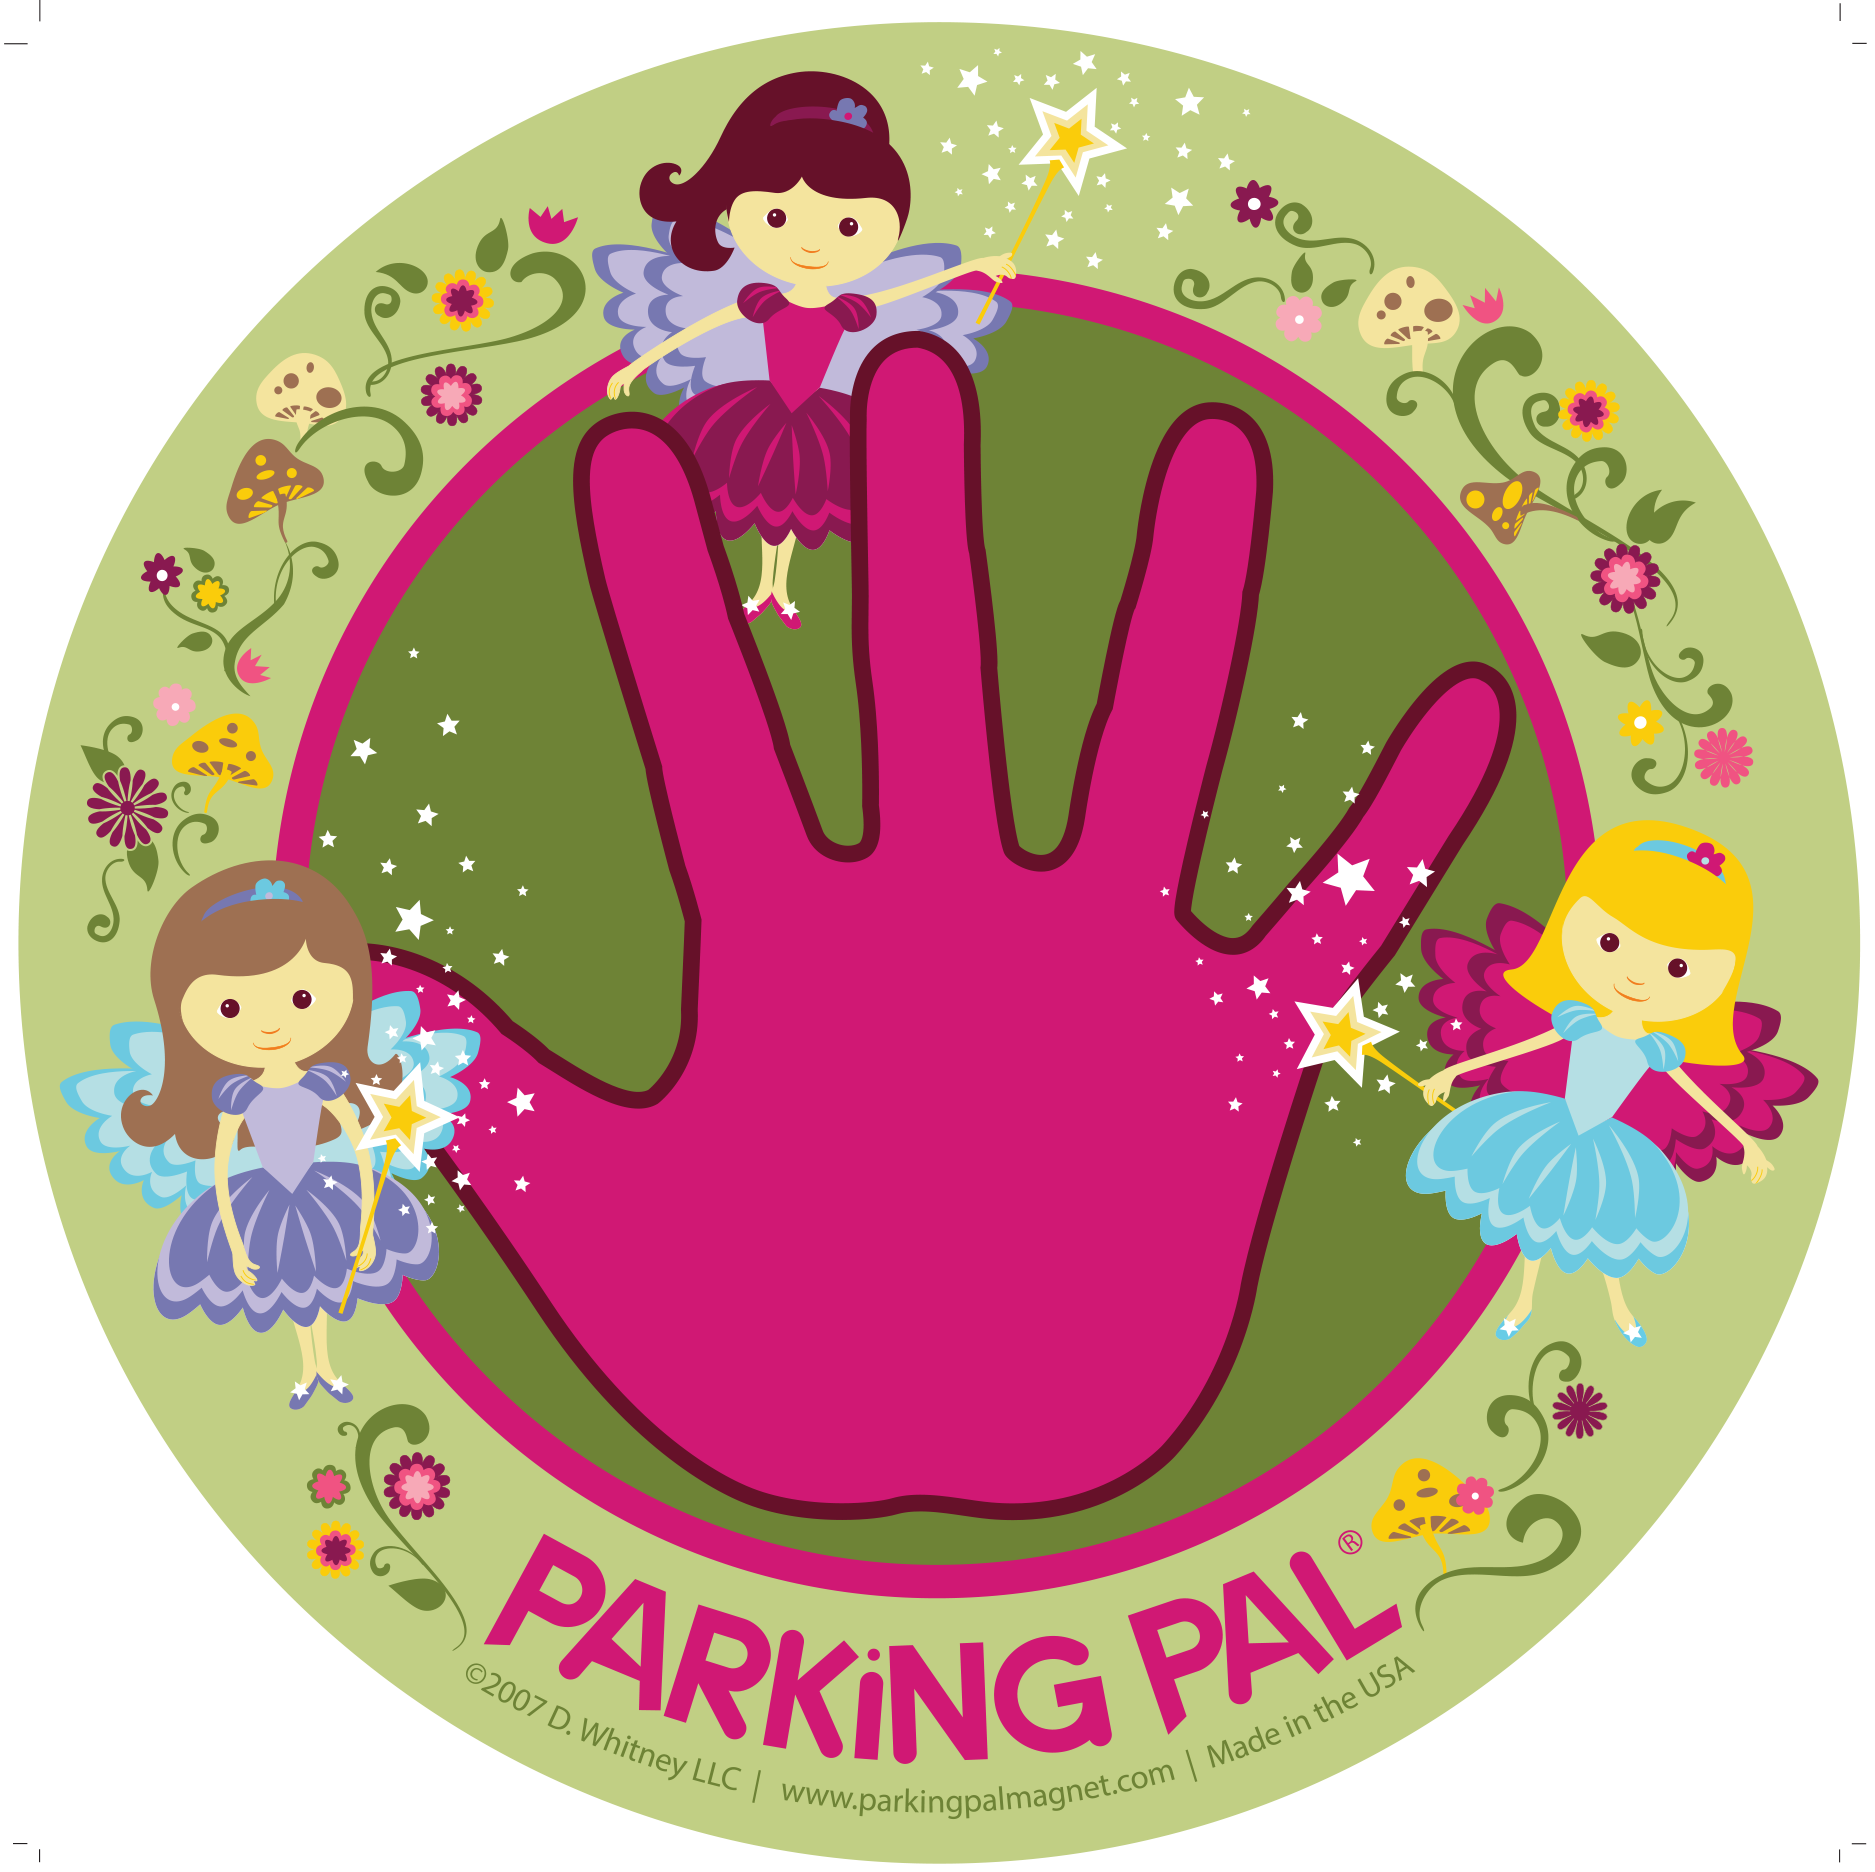 Parking lot clipart parking place. Fairy pal car magnet